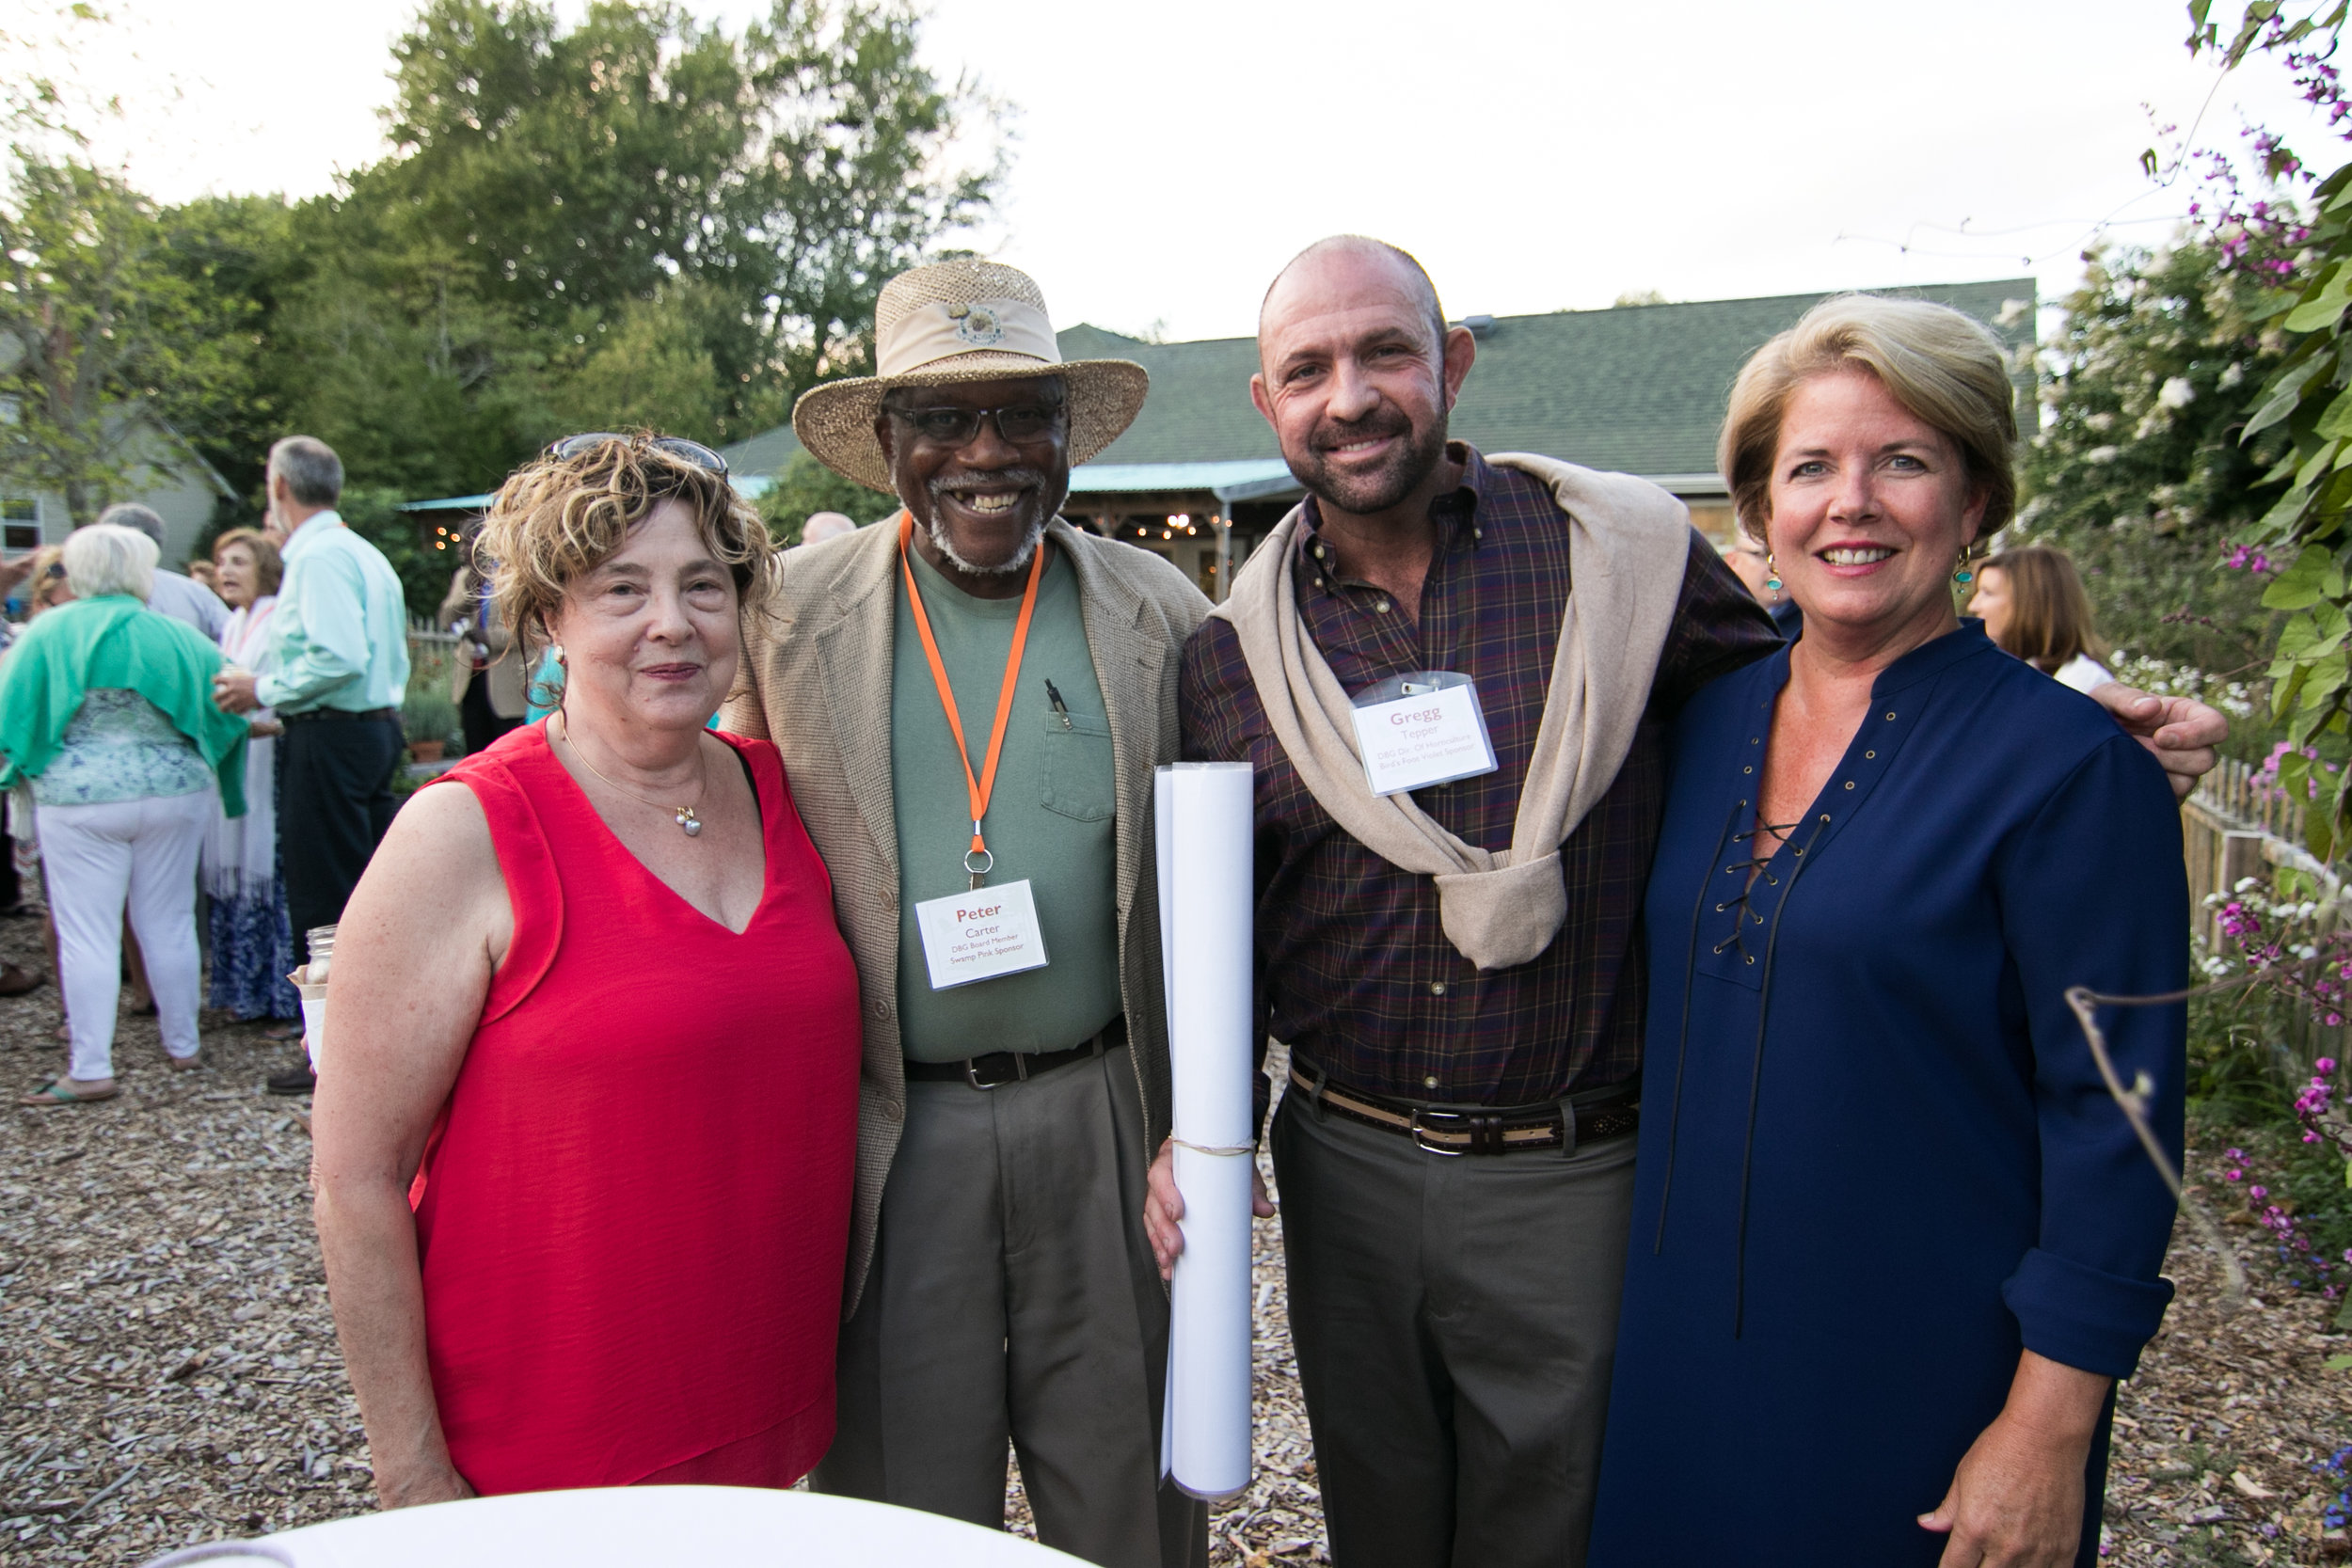 Sheryl Swed, Peter Carter, Gregg Tepper, and First Lady Carla Markell celebrated the organization's successful fundraising. Photographs by Tyler Valliant, Coastal Point